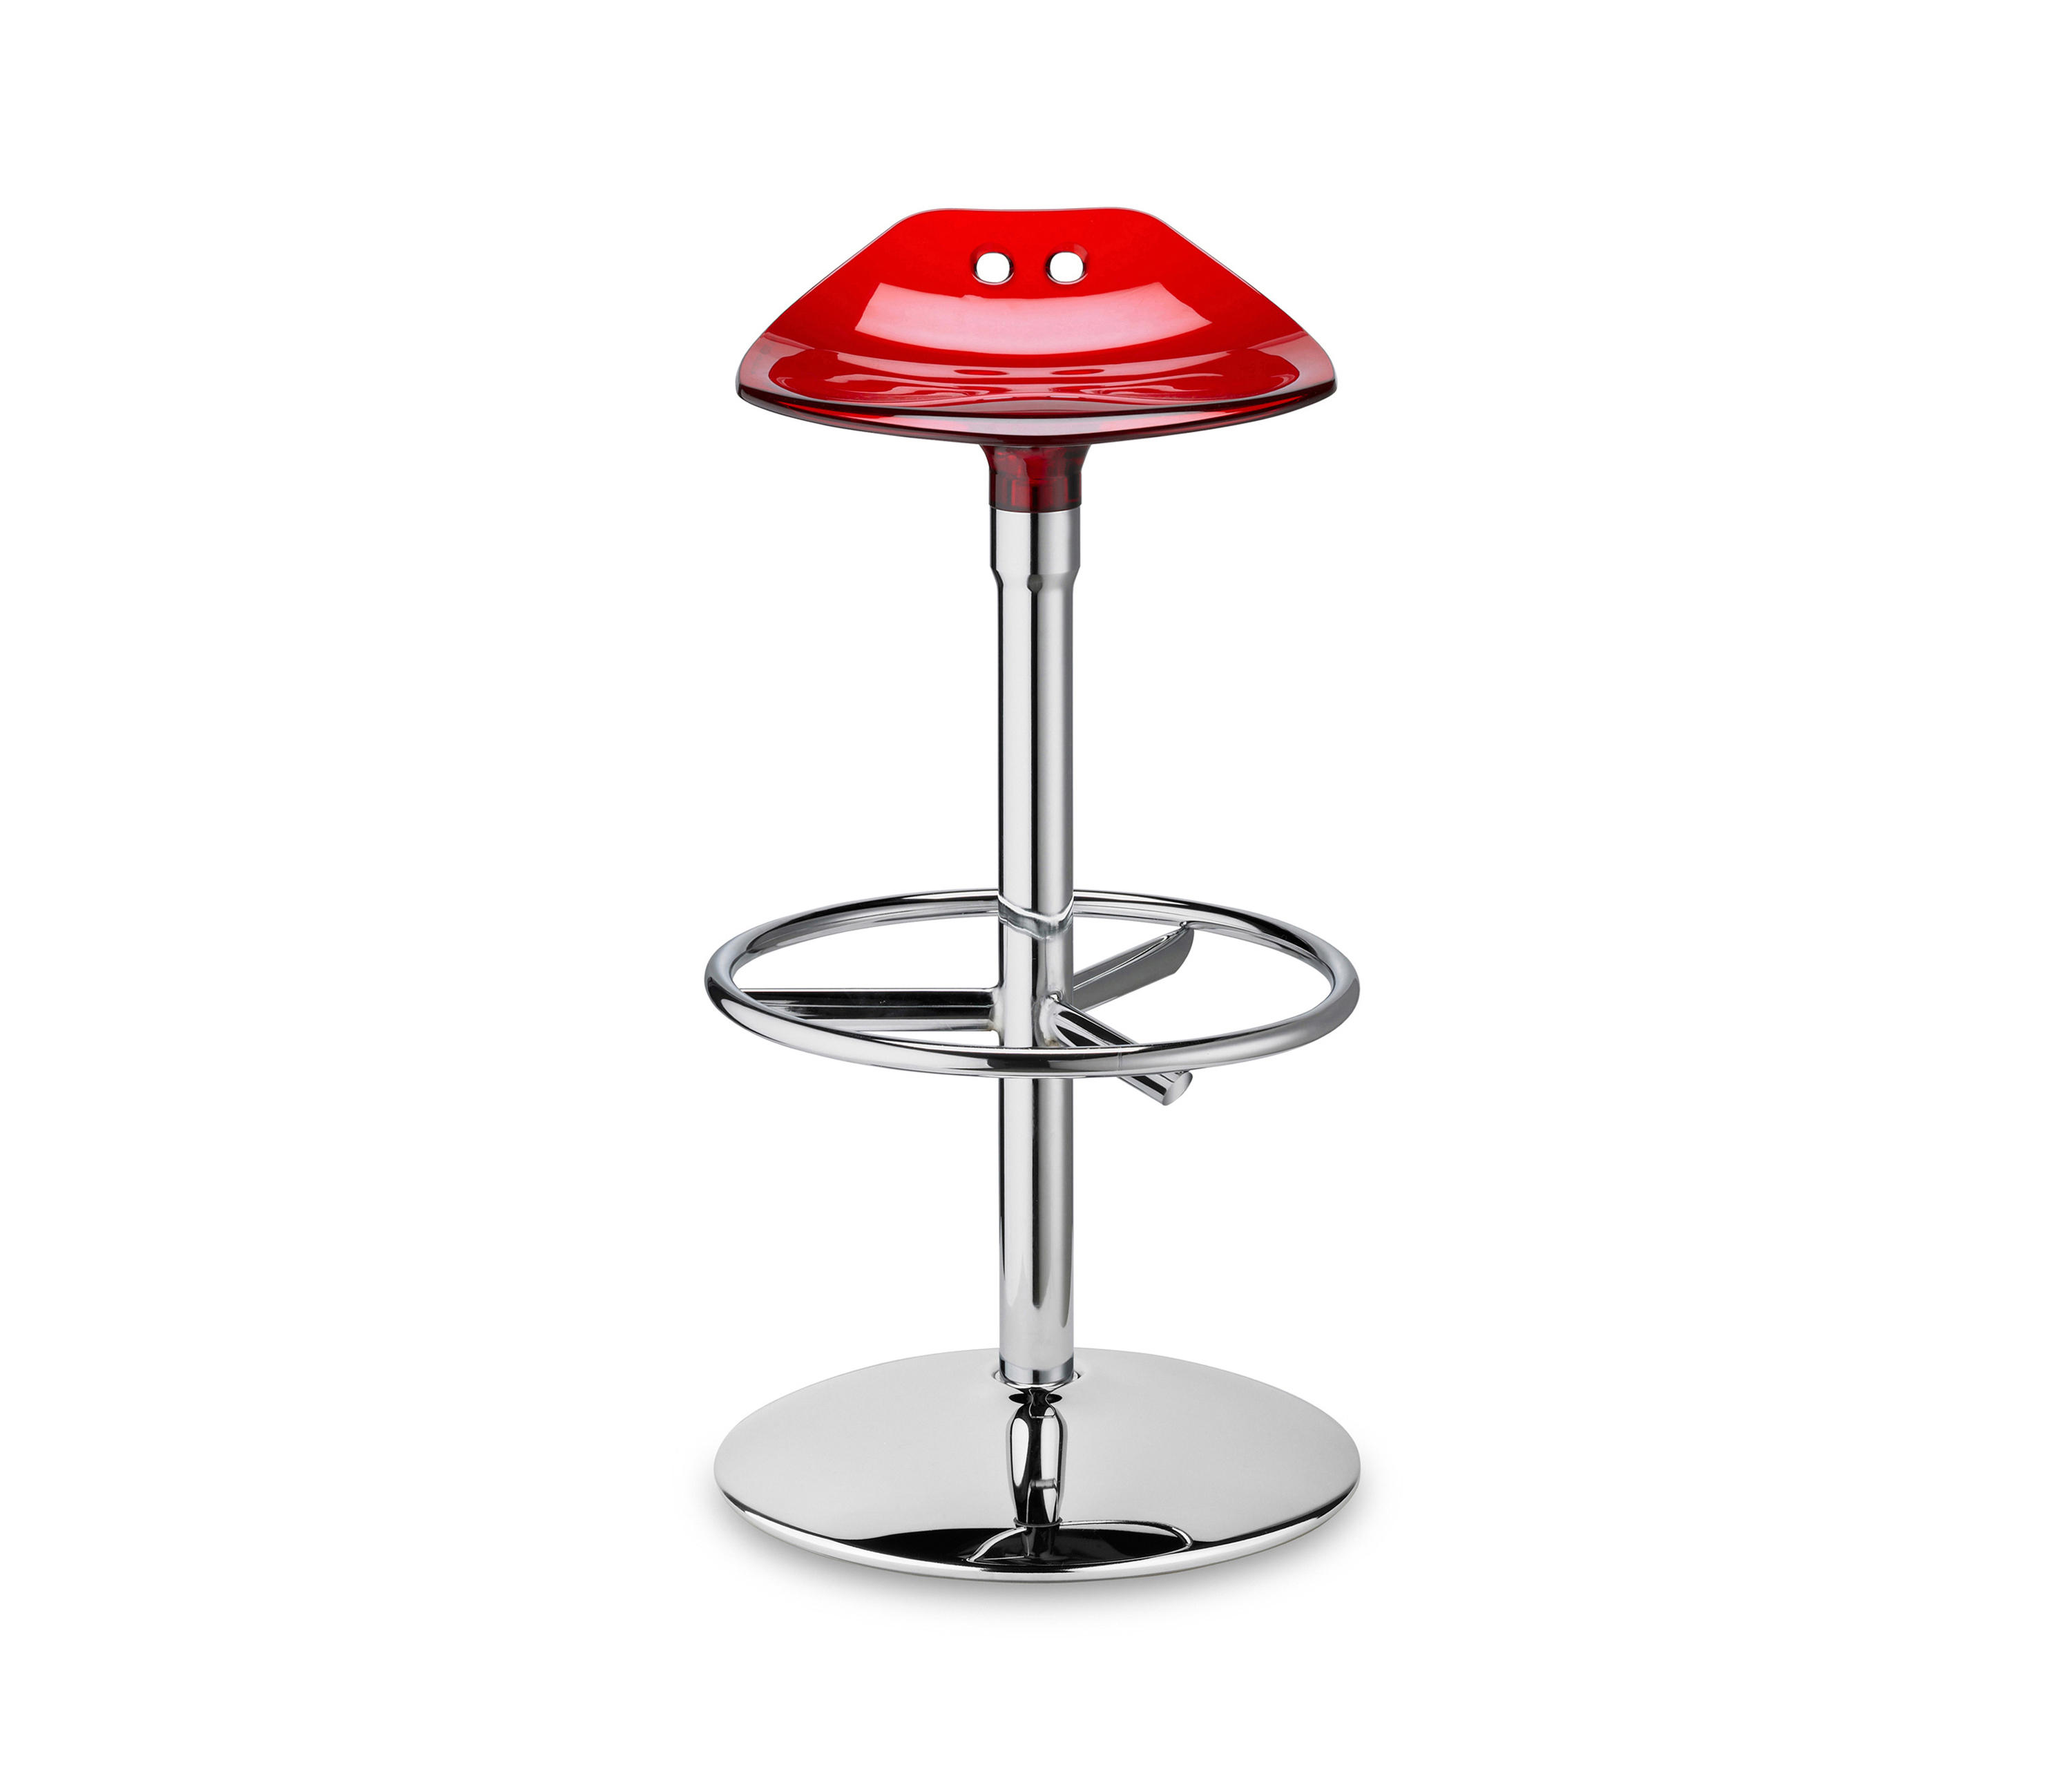 Stupendous Frog Twist Stool Designer Furniture Architonic Andrewgaddart Wooden Chair Designs For Living Room Andrewgaddartcom